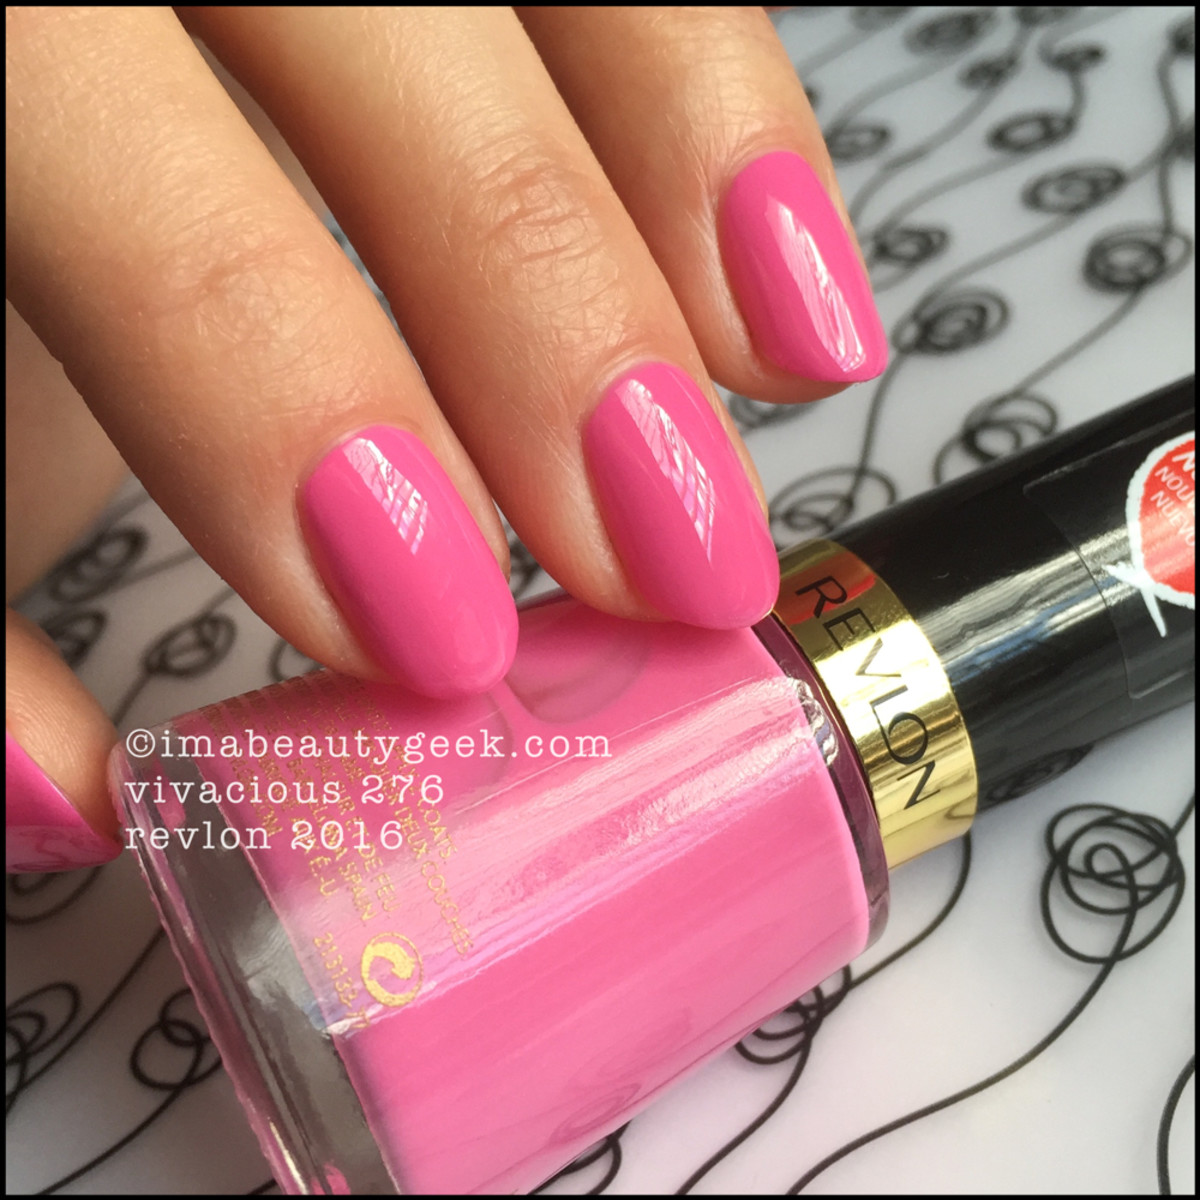 Revlon 2016 nail polish swatches and review beautygeeks revlon nail polish 2016revlon vivacious 276 nail enamel nvjuhfo Image collections